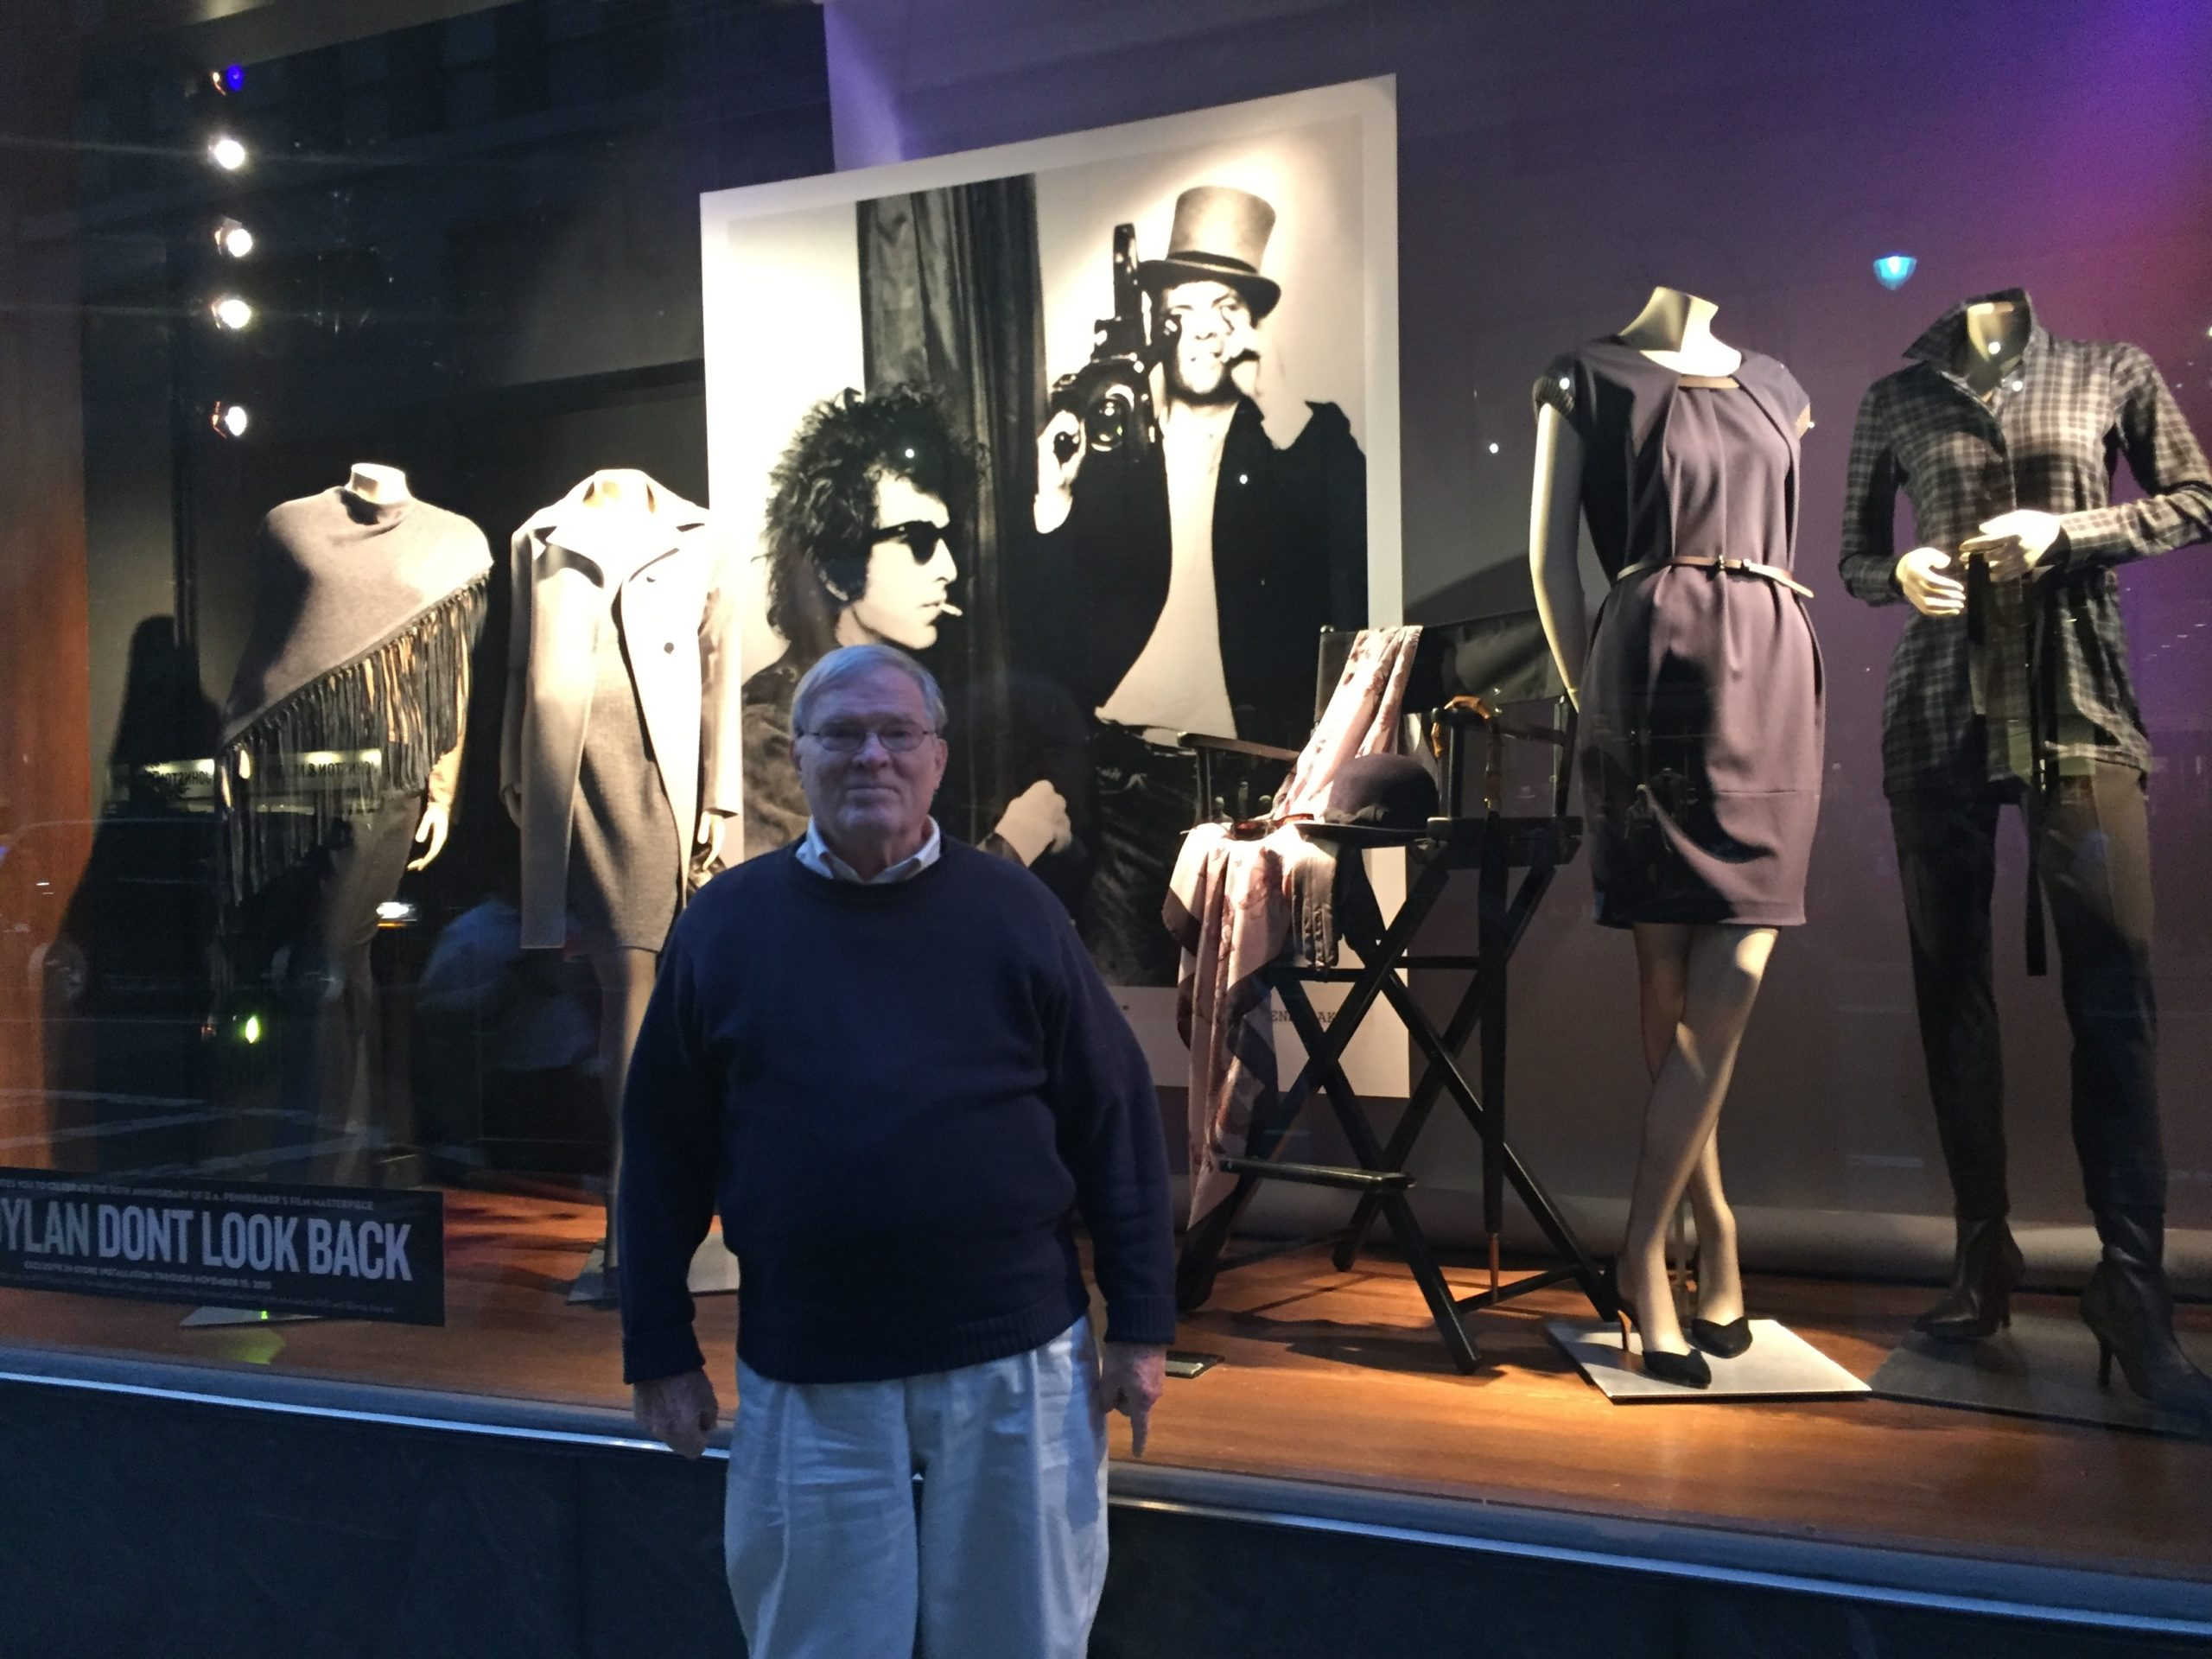 D.A. Pennebaker in front of the Paul Stuart store window on Madison Ave featuring Joseph's Baldassare's first Bob Dylan photo exhibition. installed